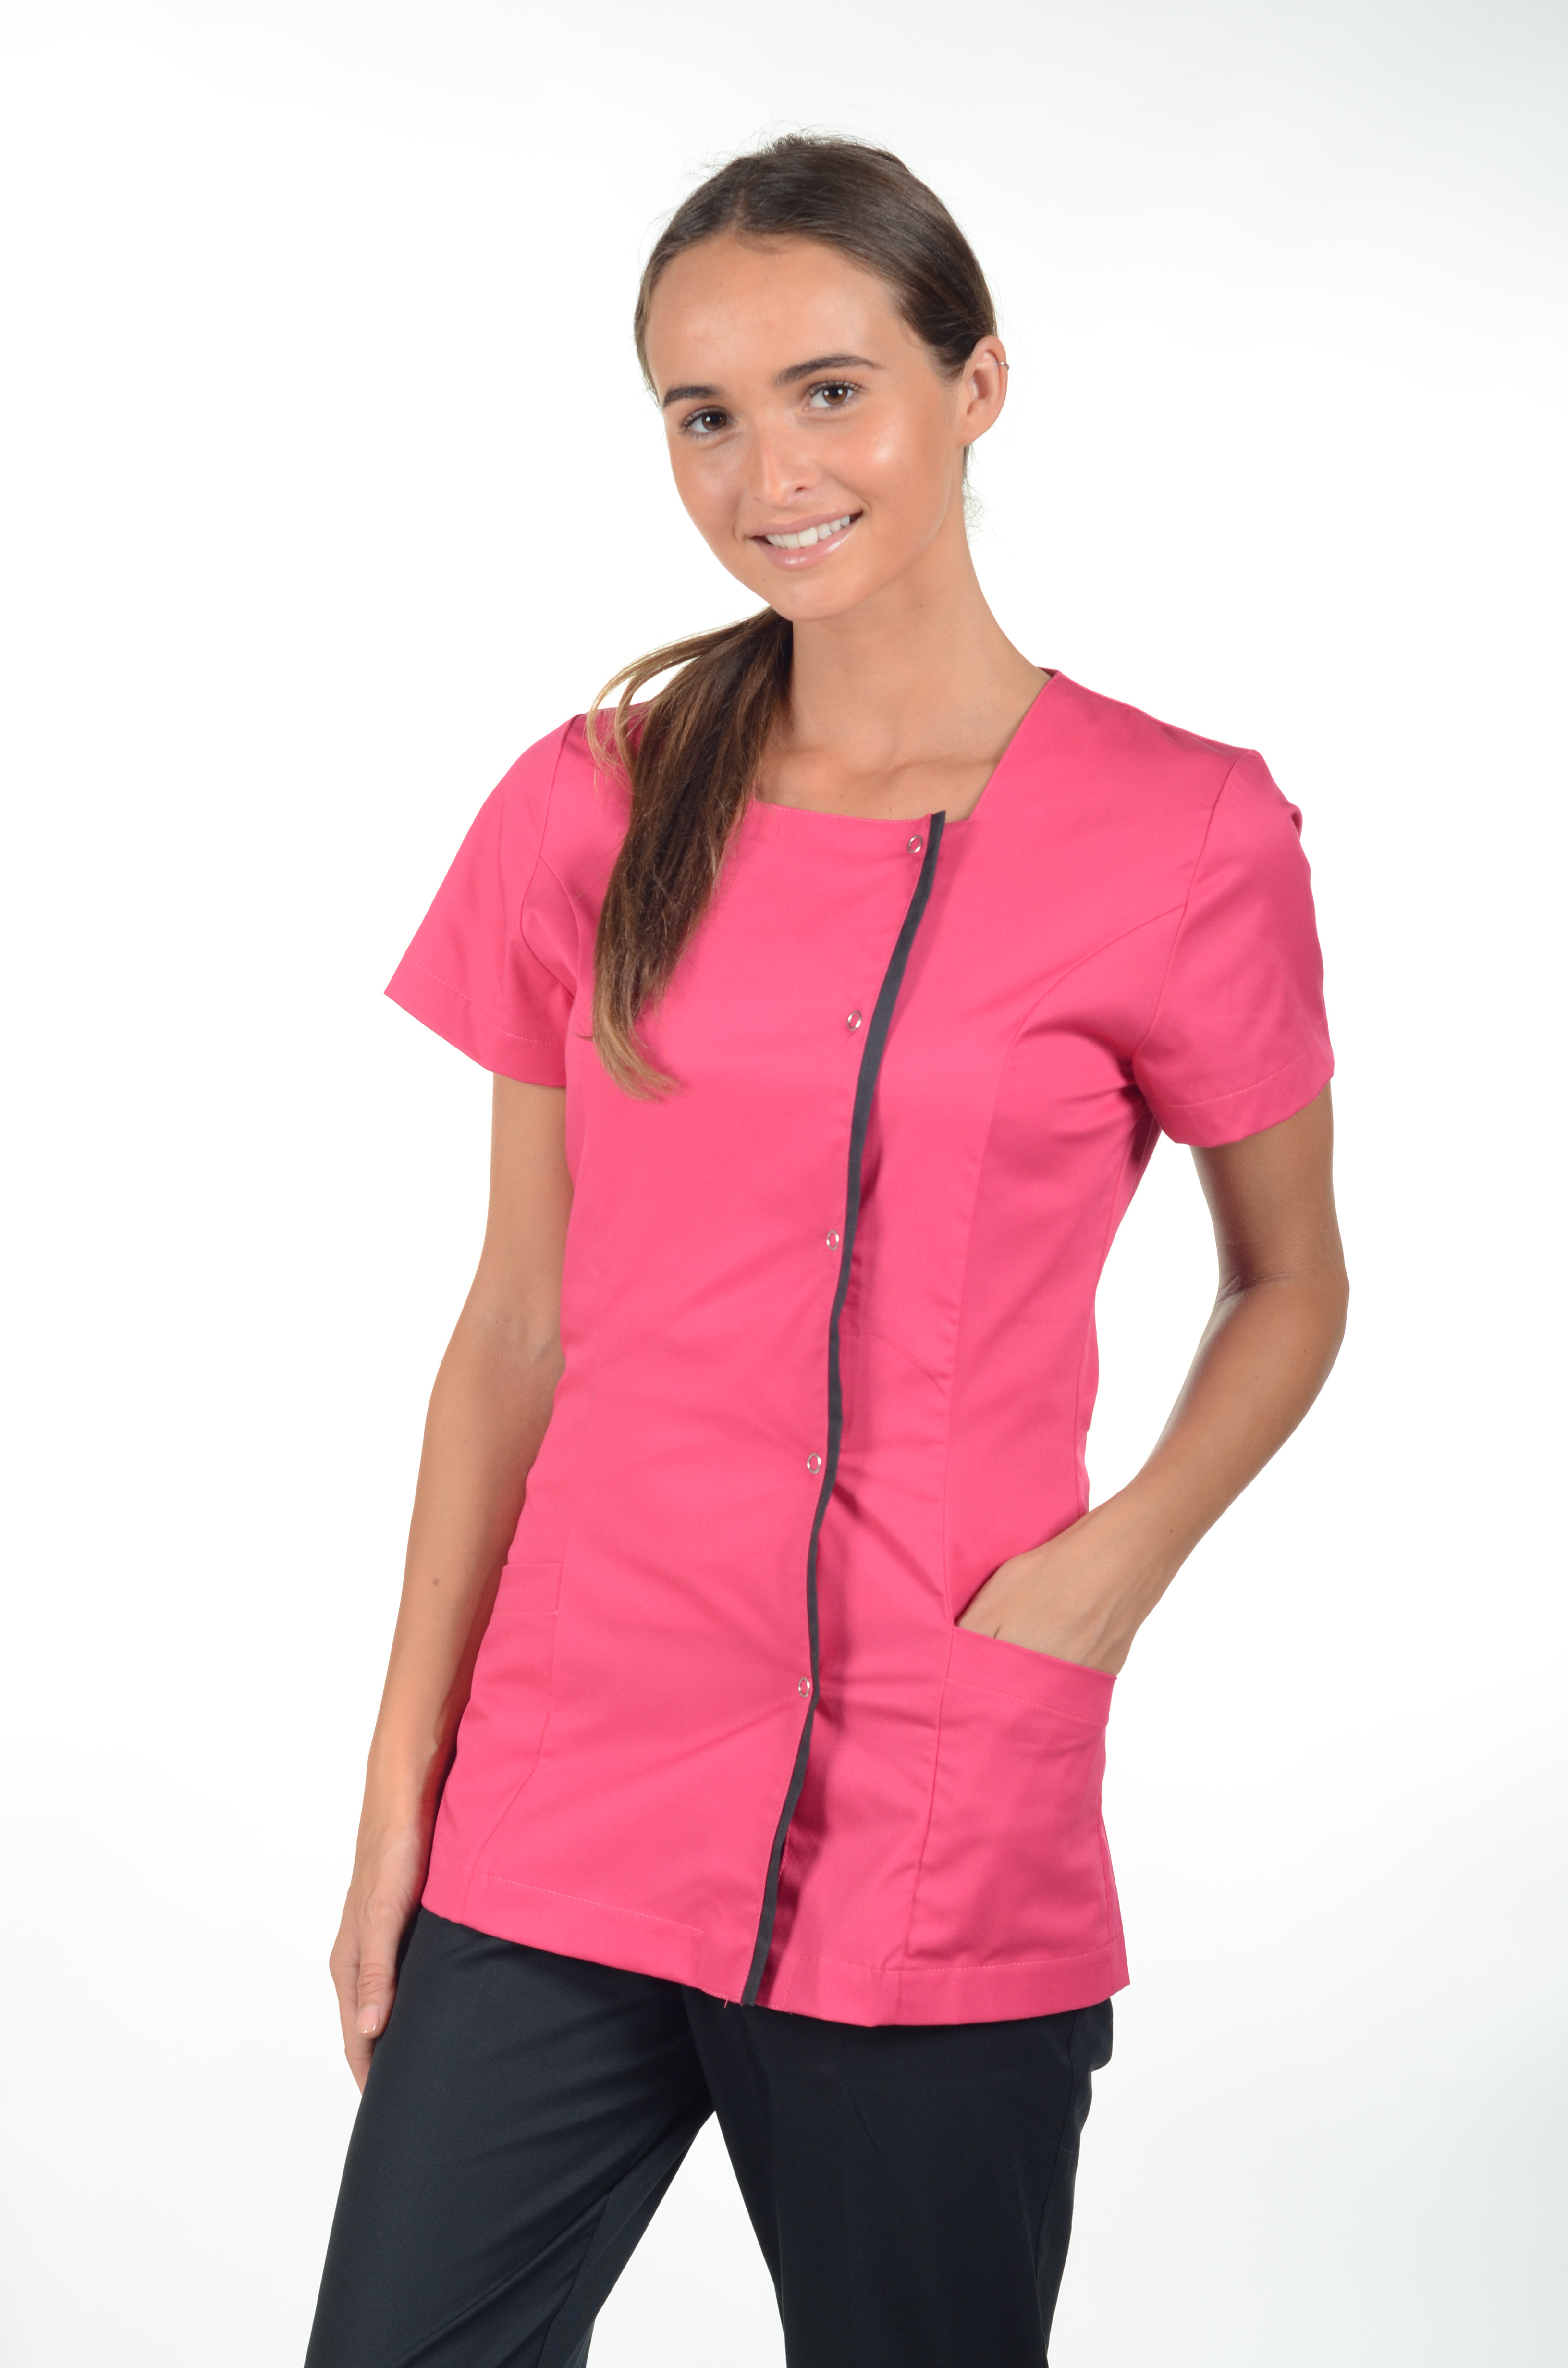 Blouse Medicale Pression Femme Cmt Stretch 2605